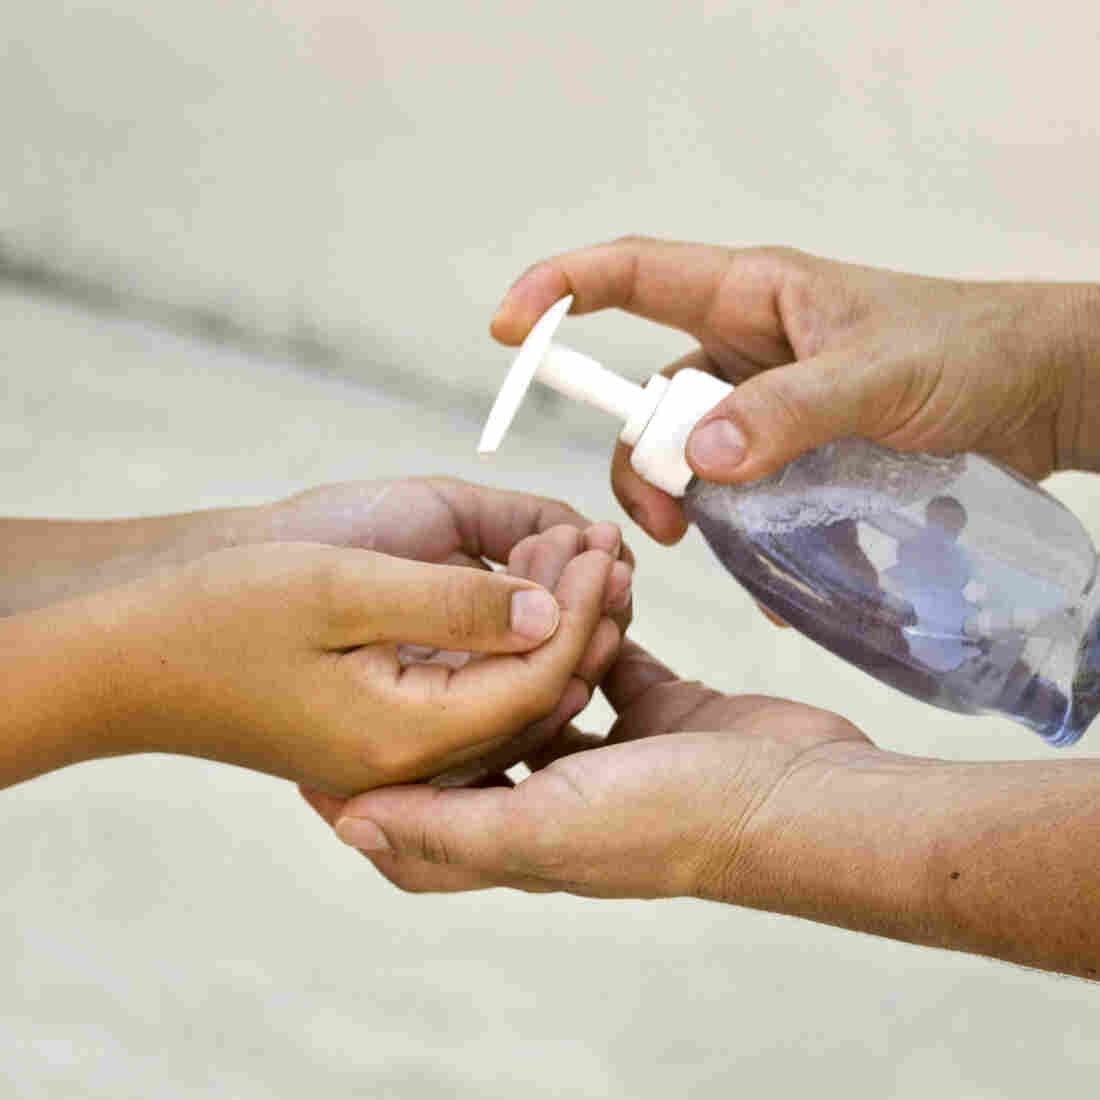 Schoolchildren Who Add Hand Sanitizer To Washing Still Get Sick